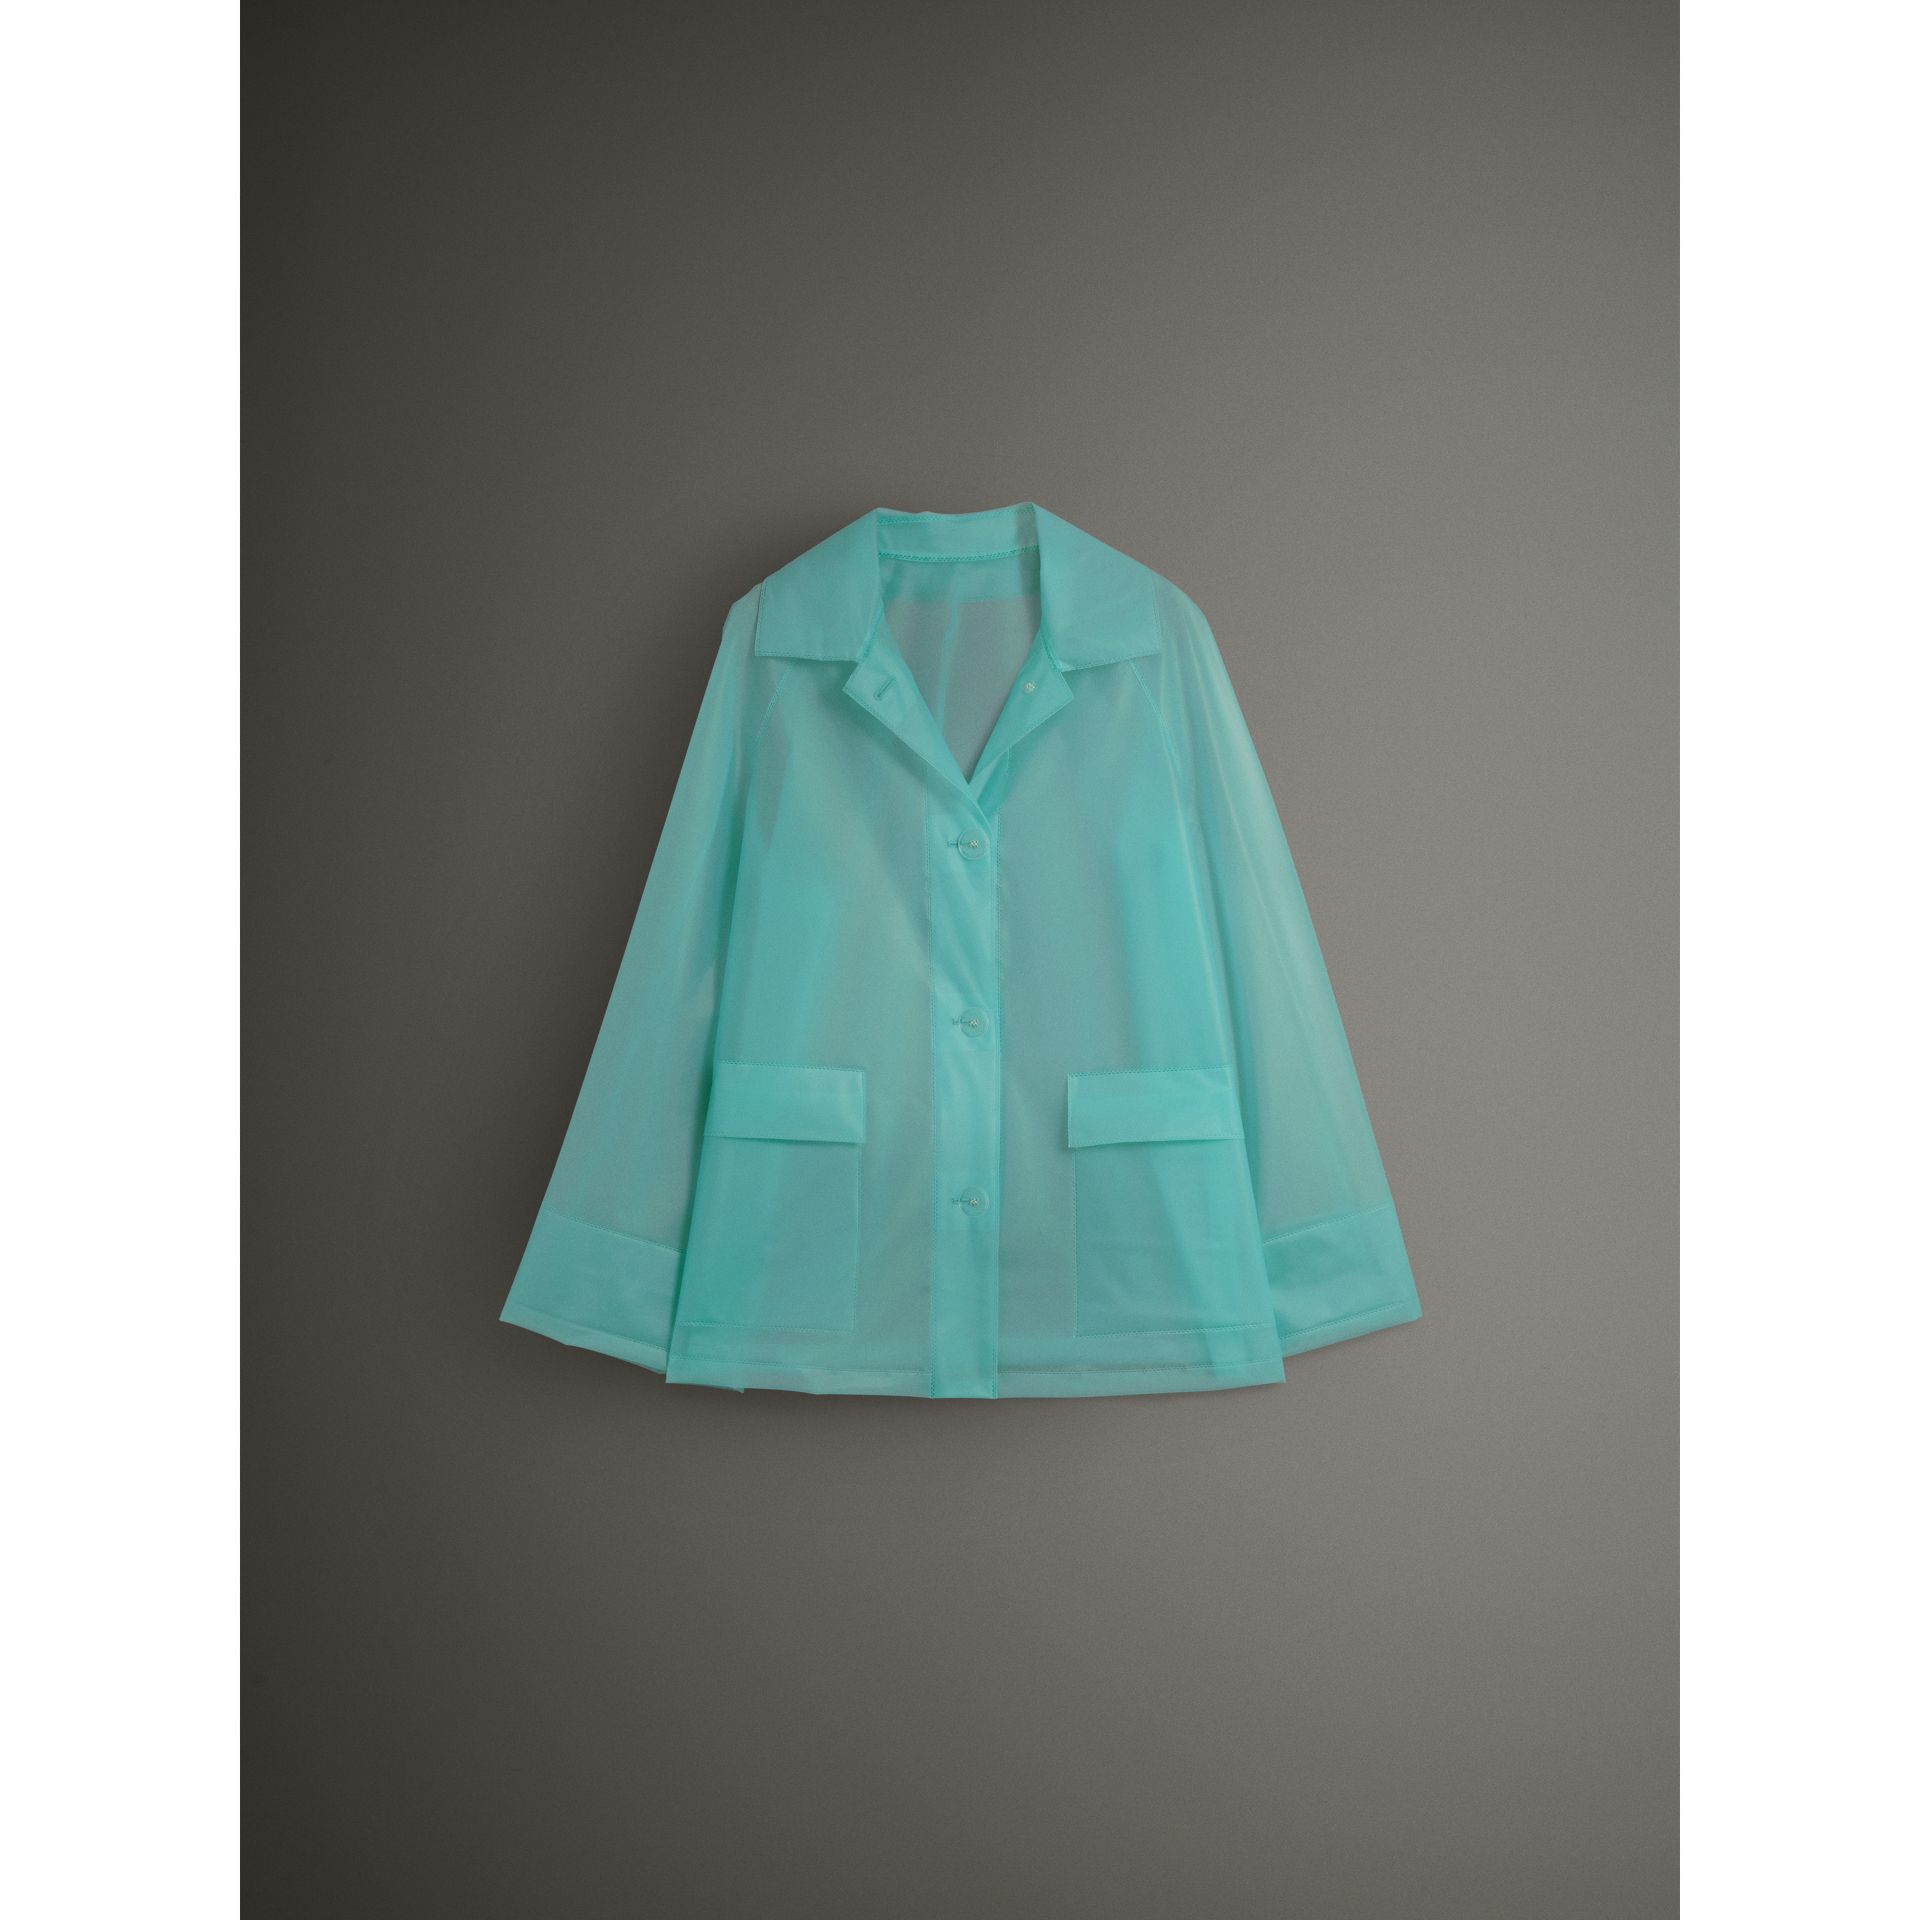 Soft-touch Plastic Single-breasted Jacket in Turquoise - Women | Burberry Australia - gallery image 4